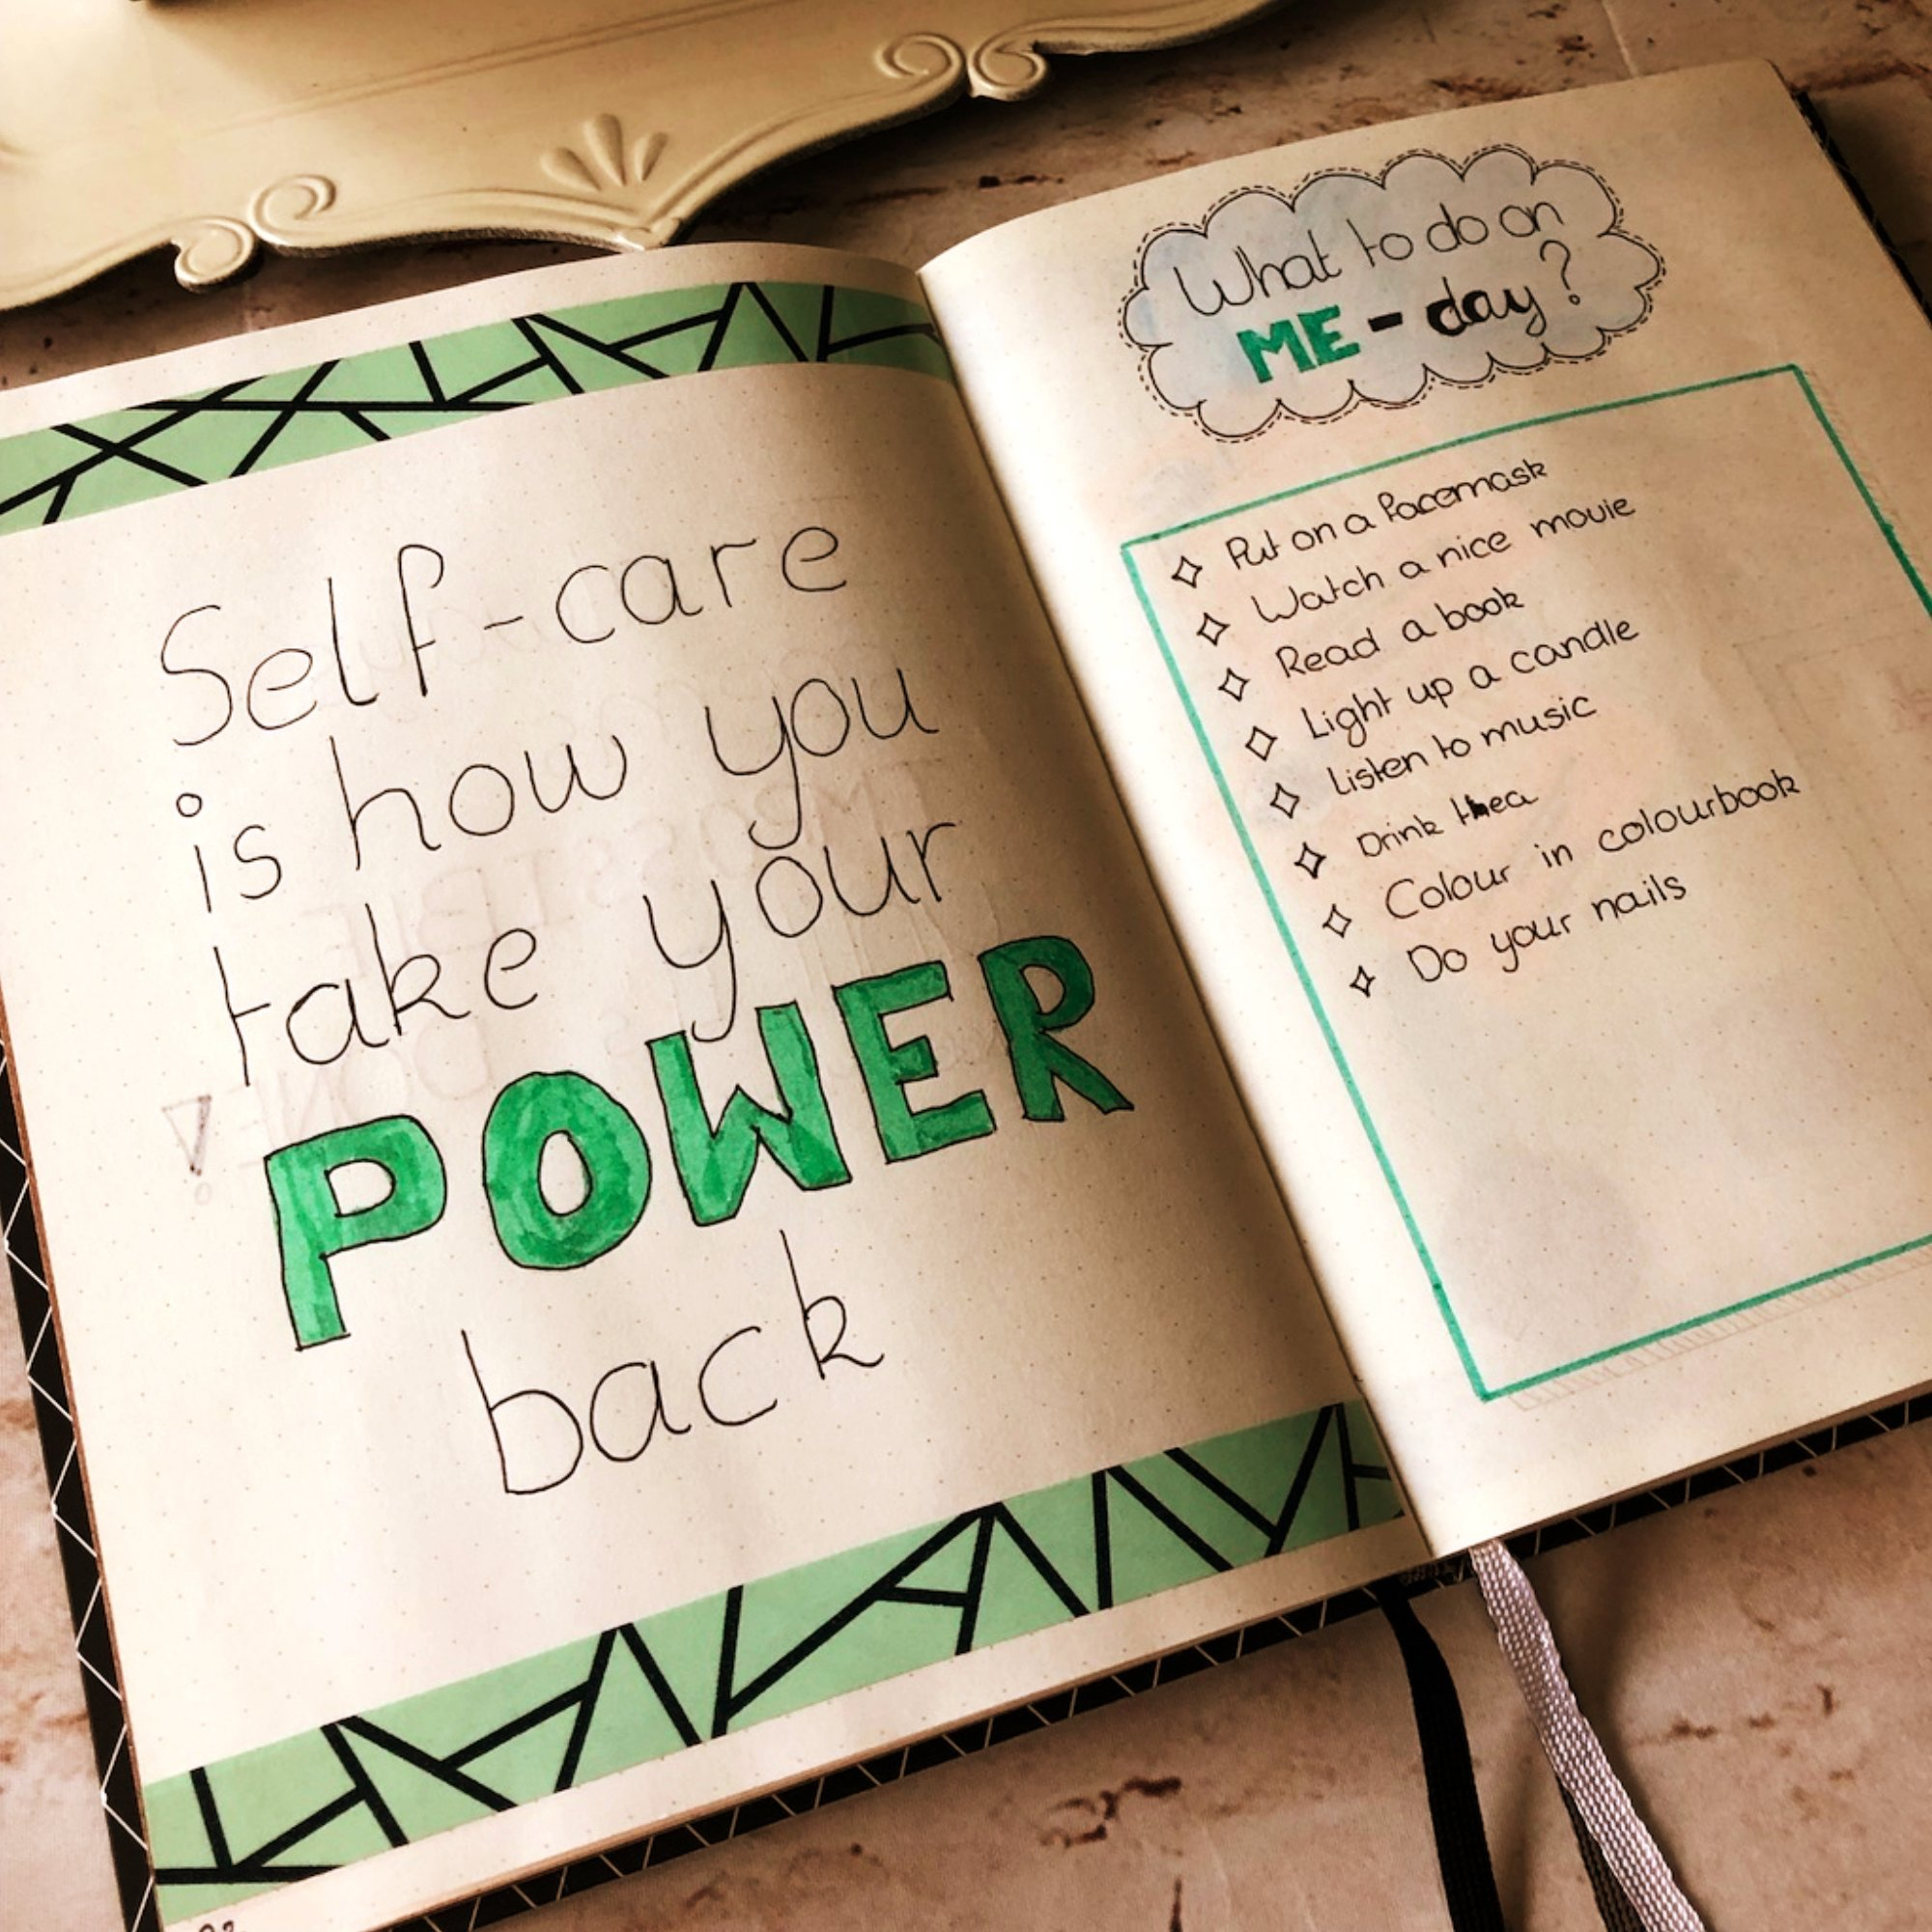 Creative journaling Quotes #2 - Self-care is how you take your power back - itstartswithacoffee.com #journaling #creativejournaling #quotes